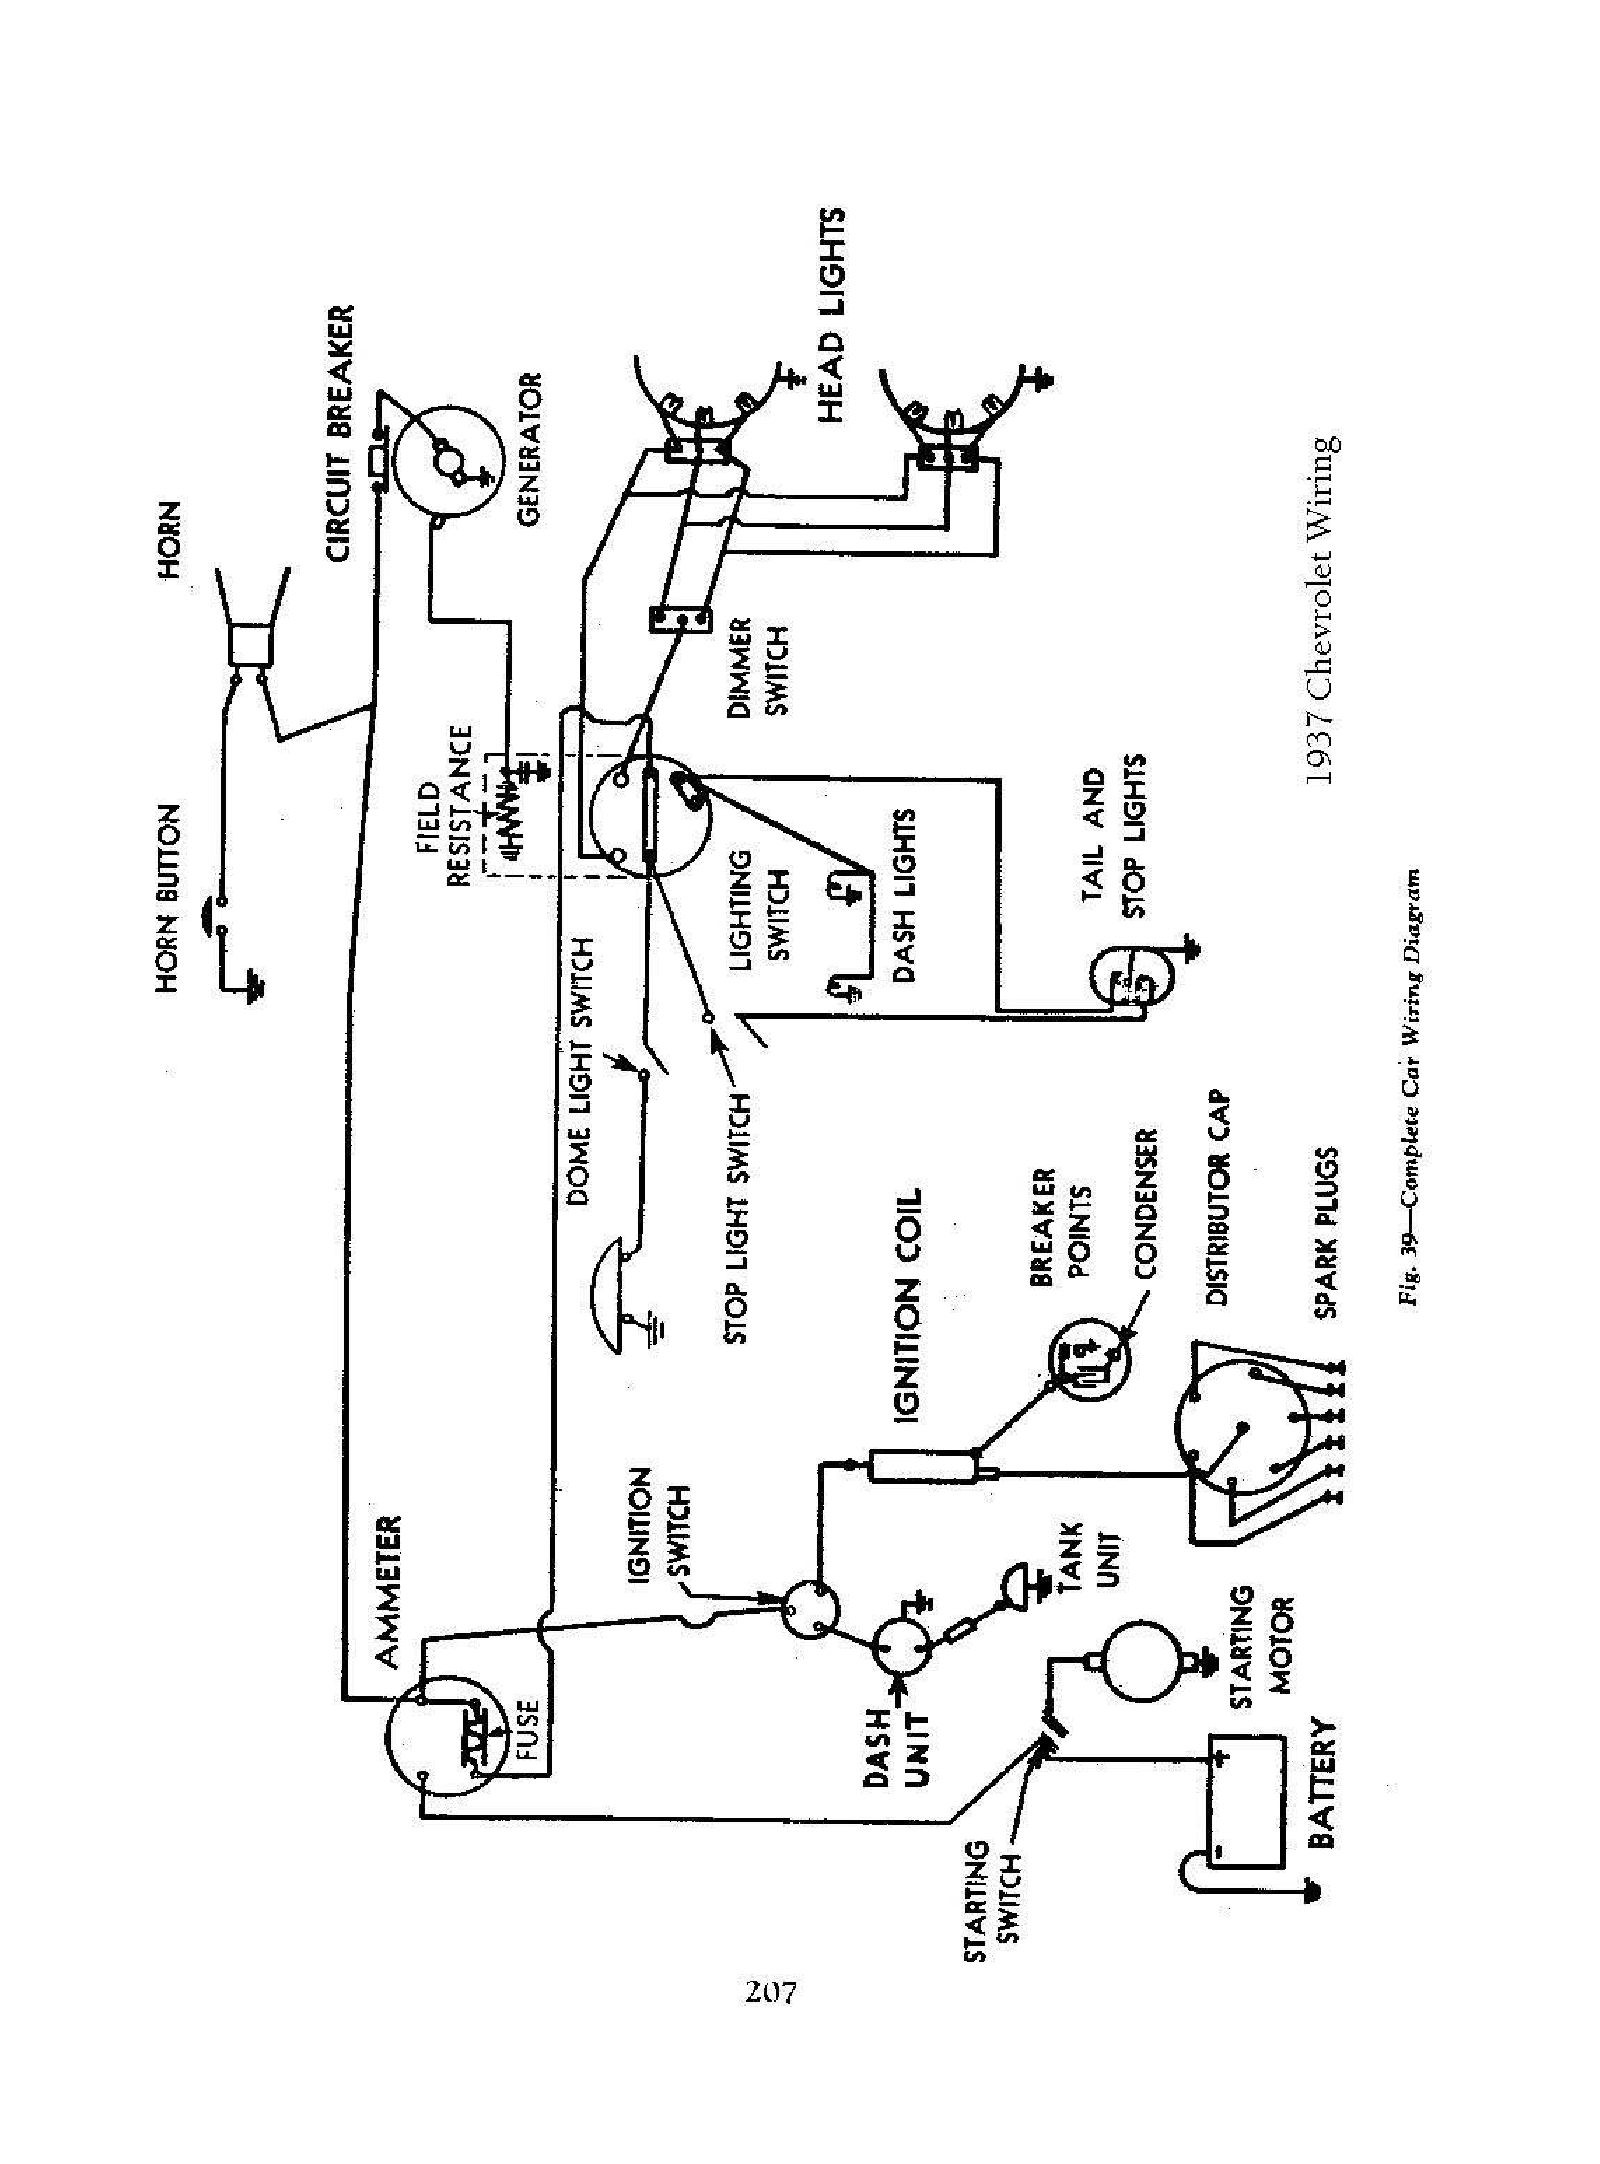 Car Dome Light Wiring Diagram Chevy Wiring Diagrams Of Car Dome Light Wiring Diagram